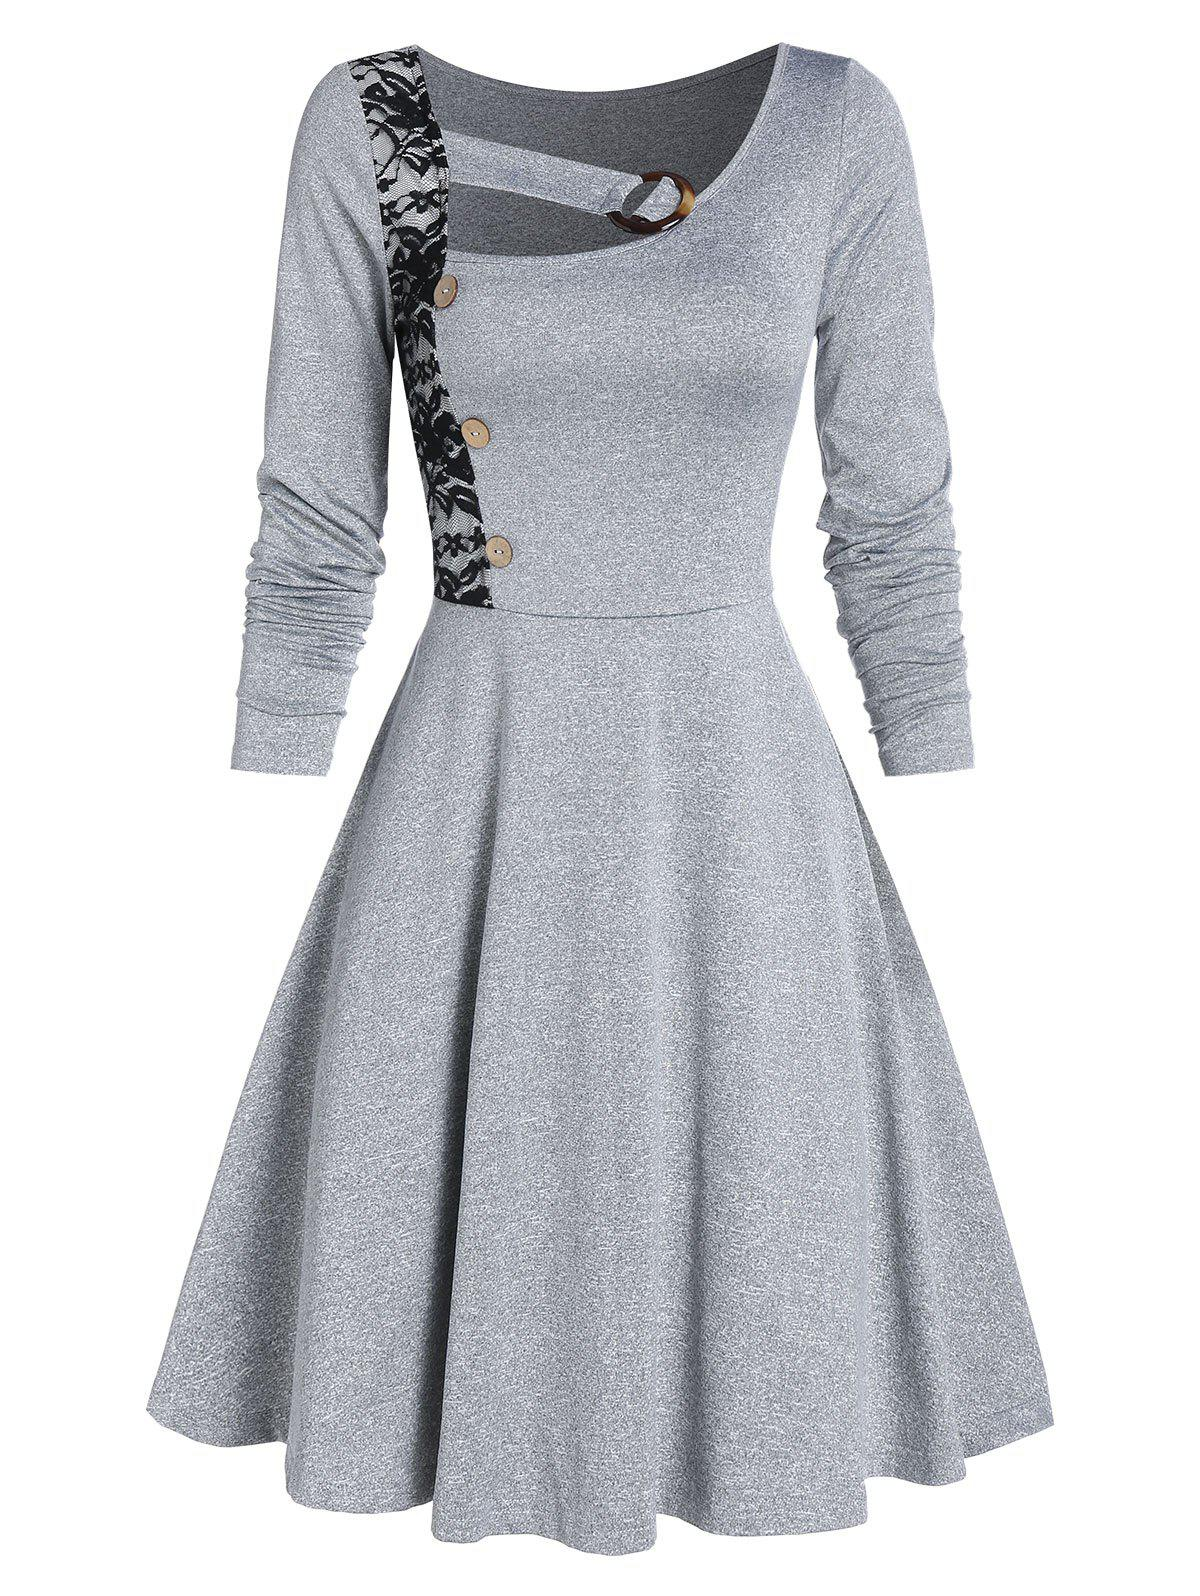 Store Lace Insert Mock Button Marled Flare Dress